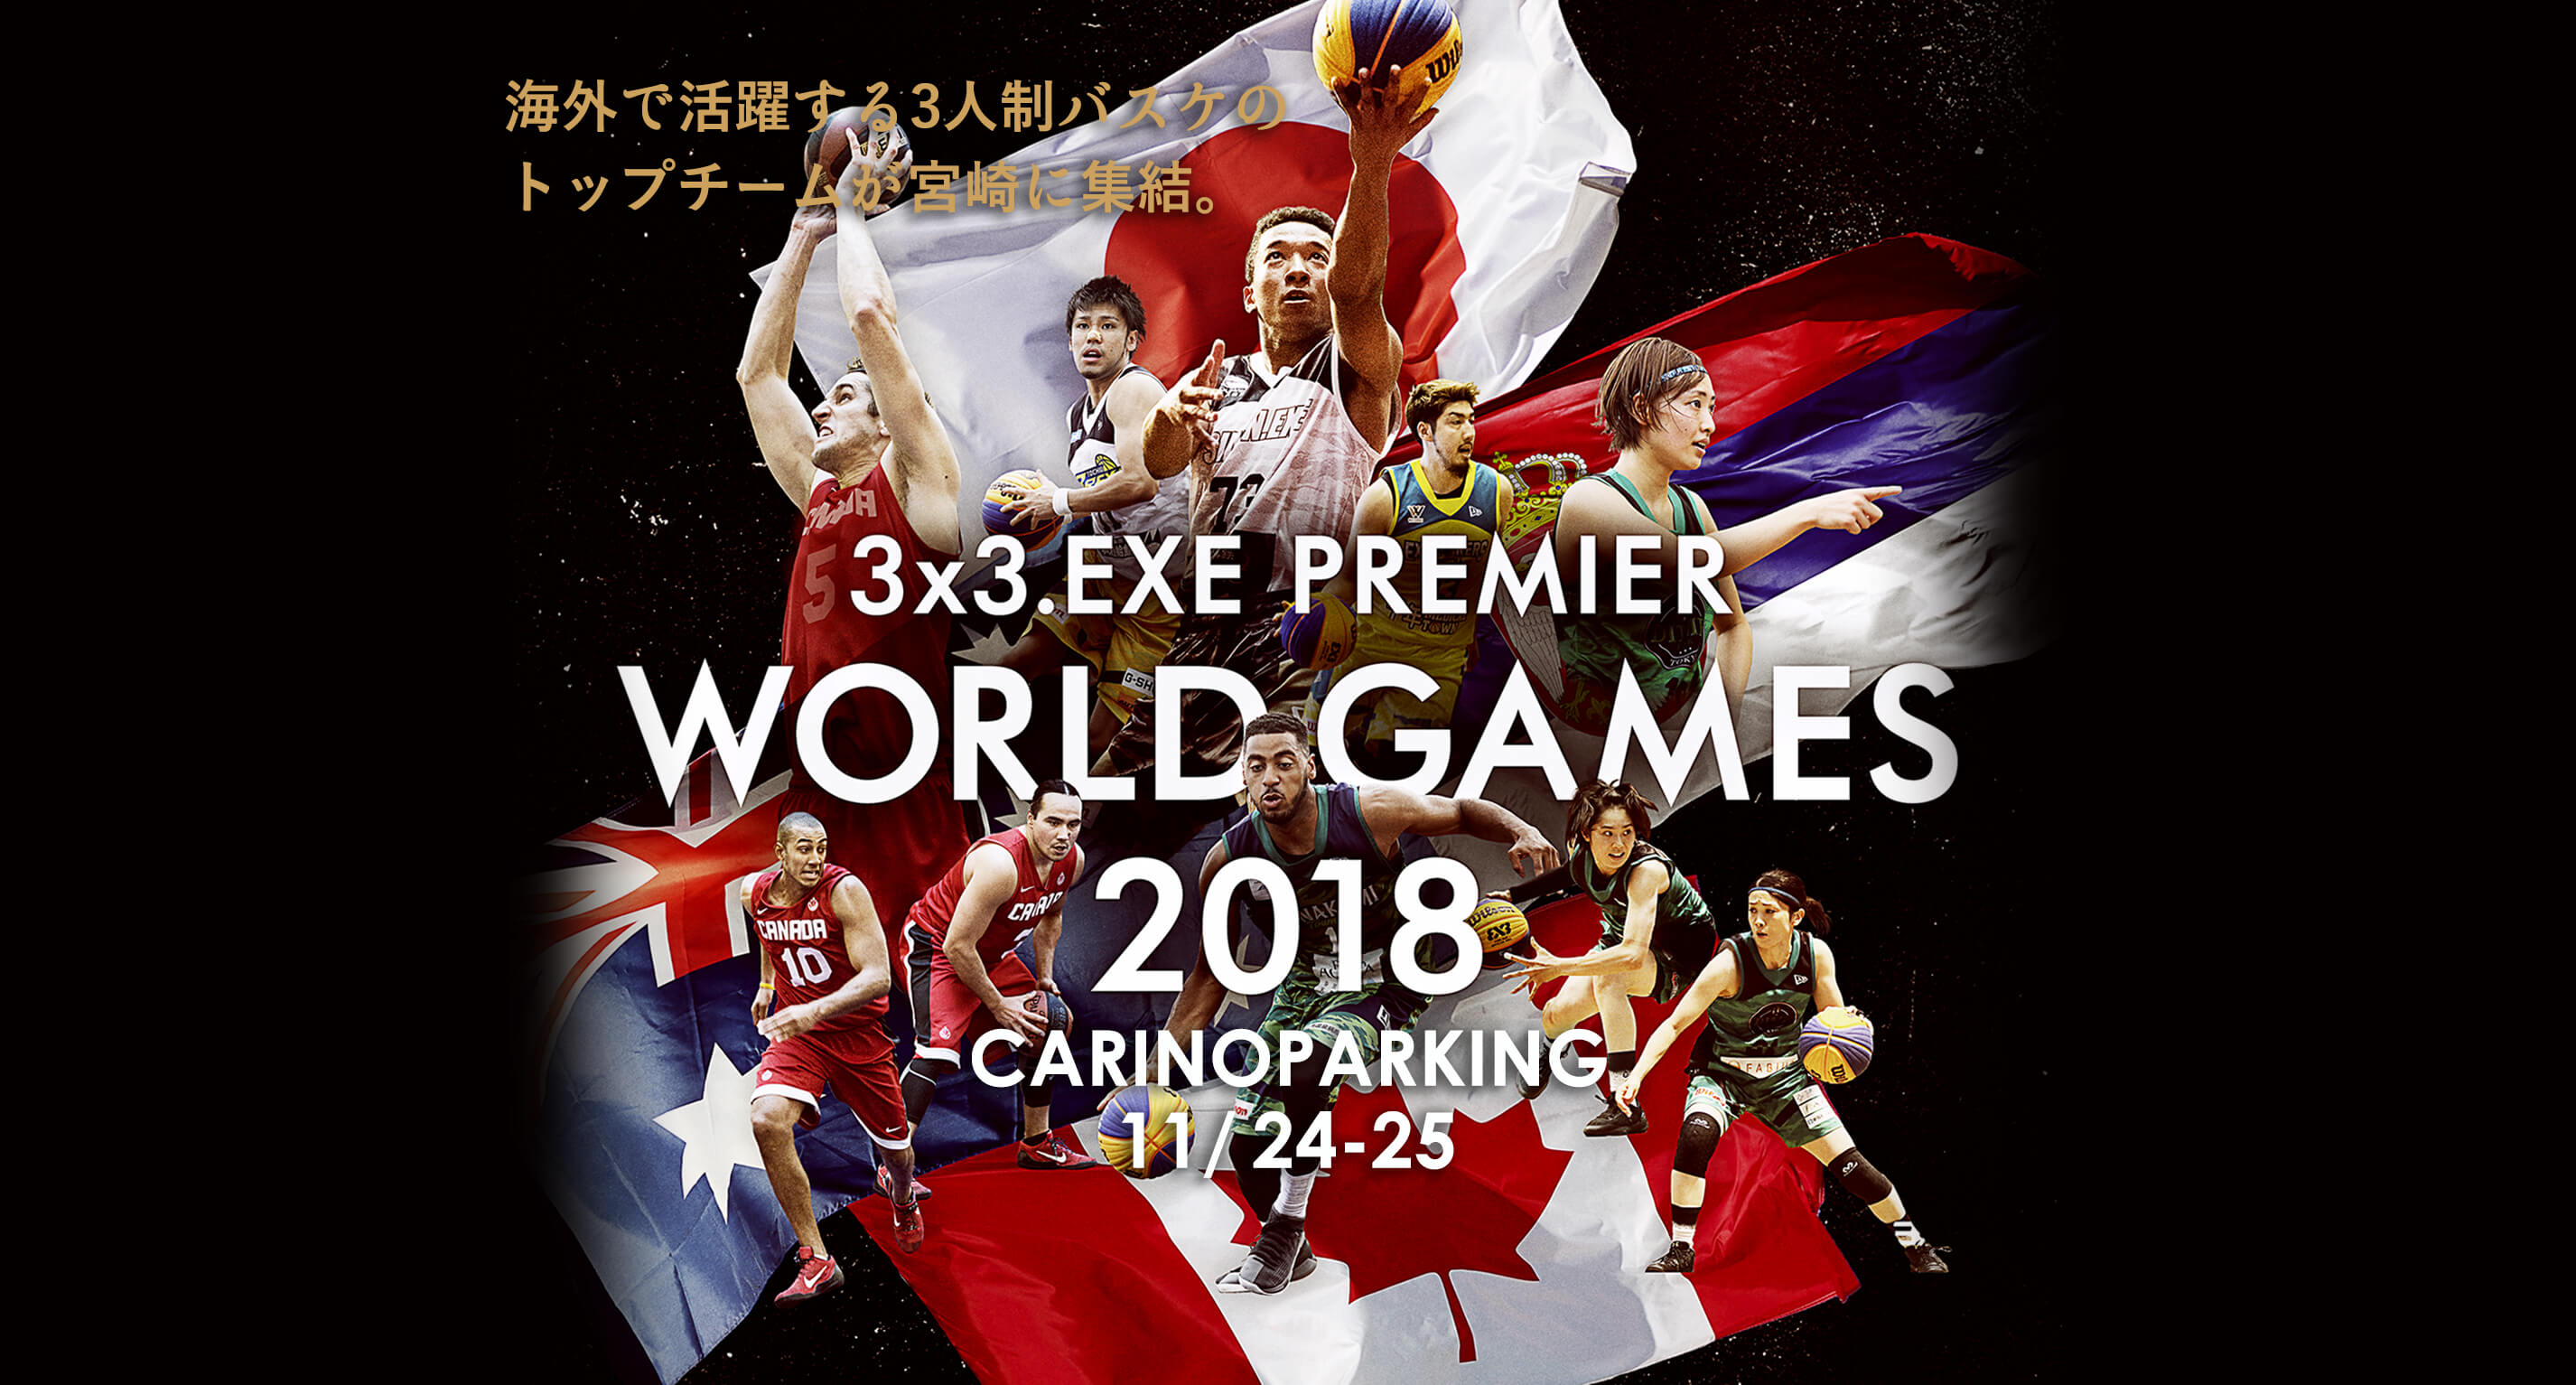 3x3.EXE PREMIER WORLD GAMES